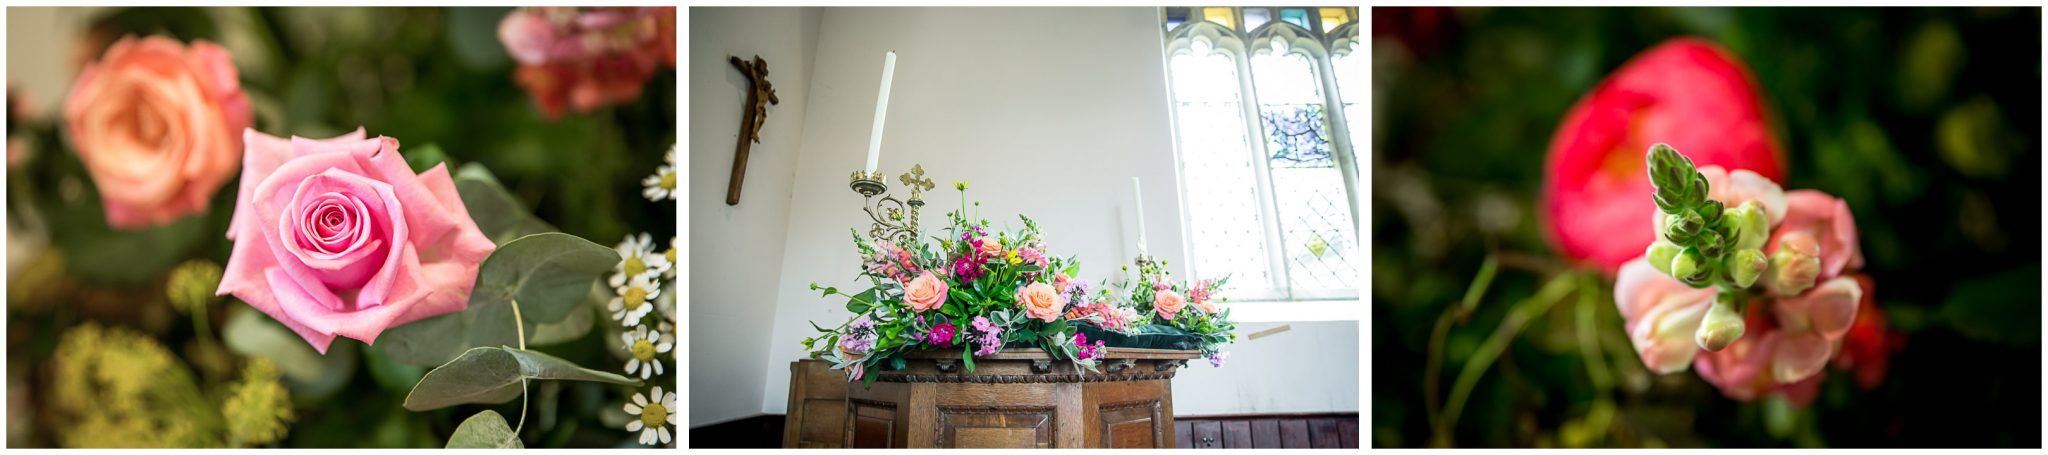 Floral details - church interior